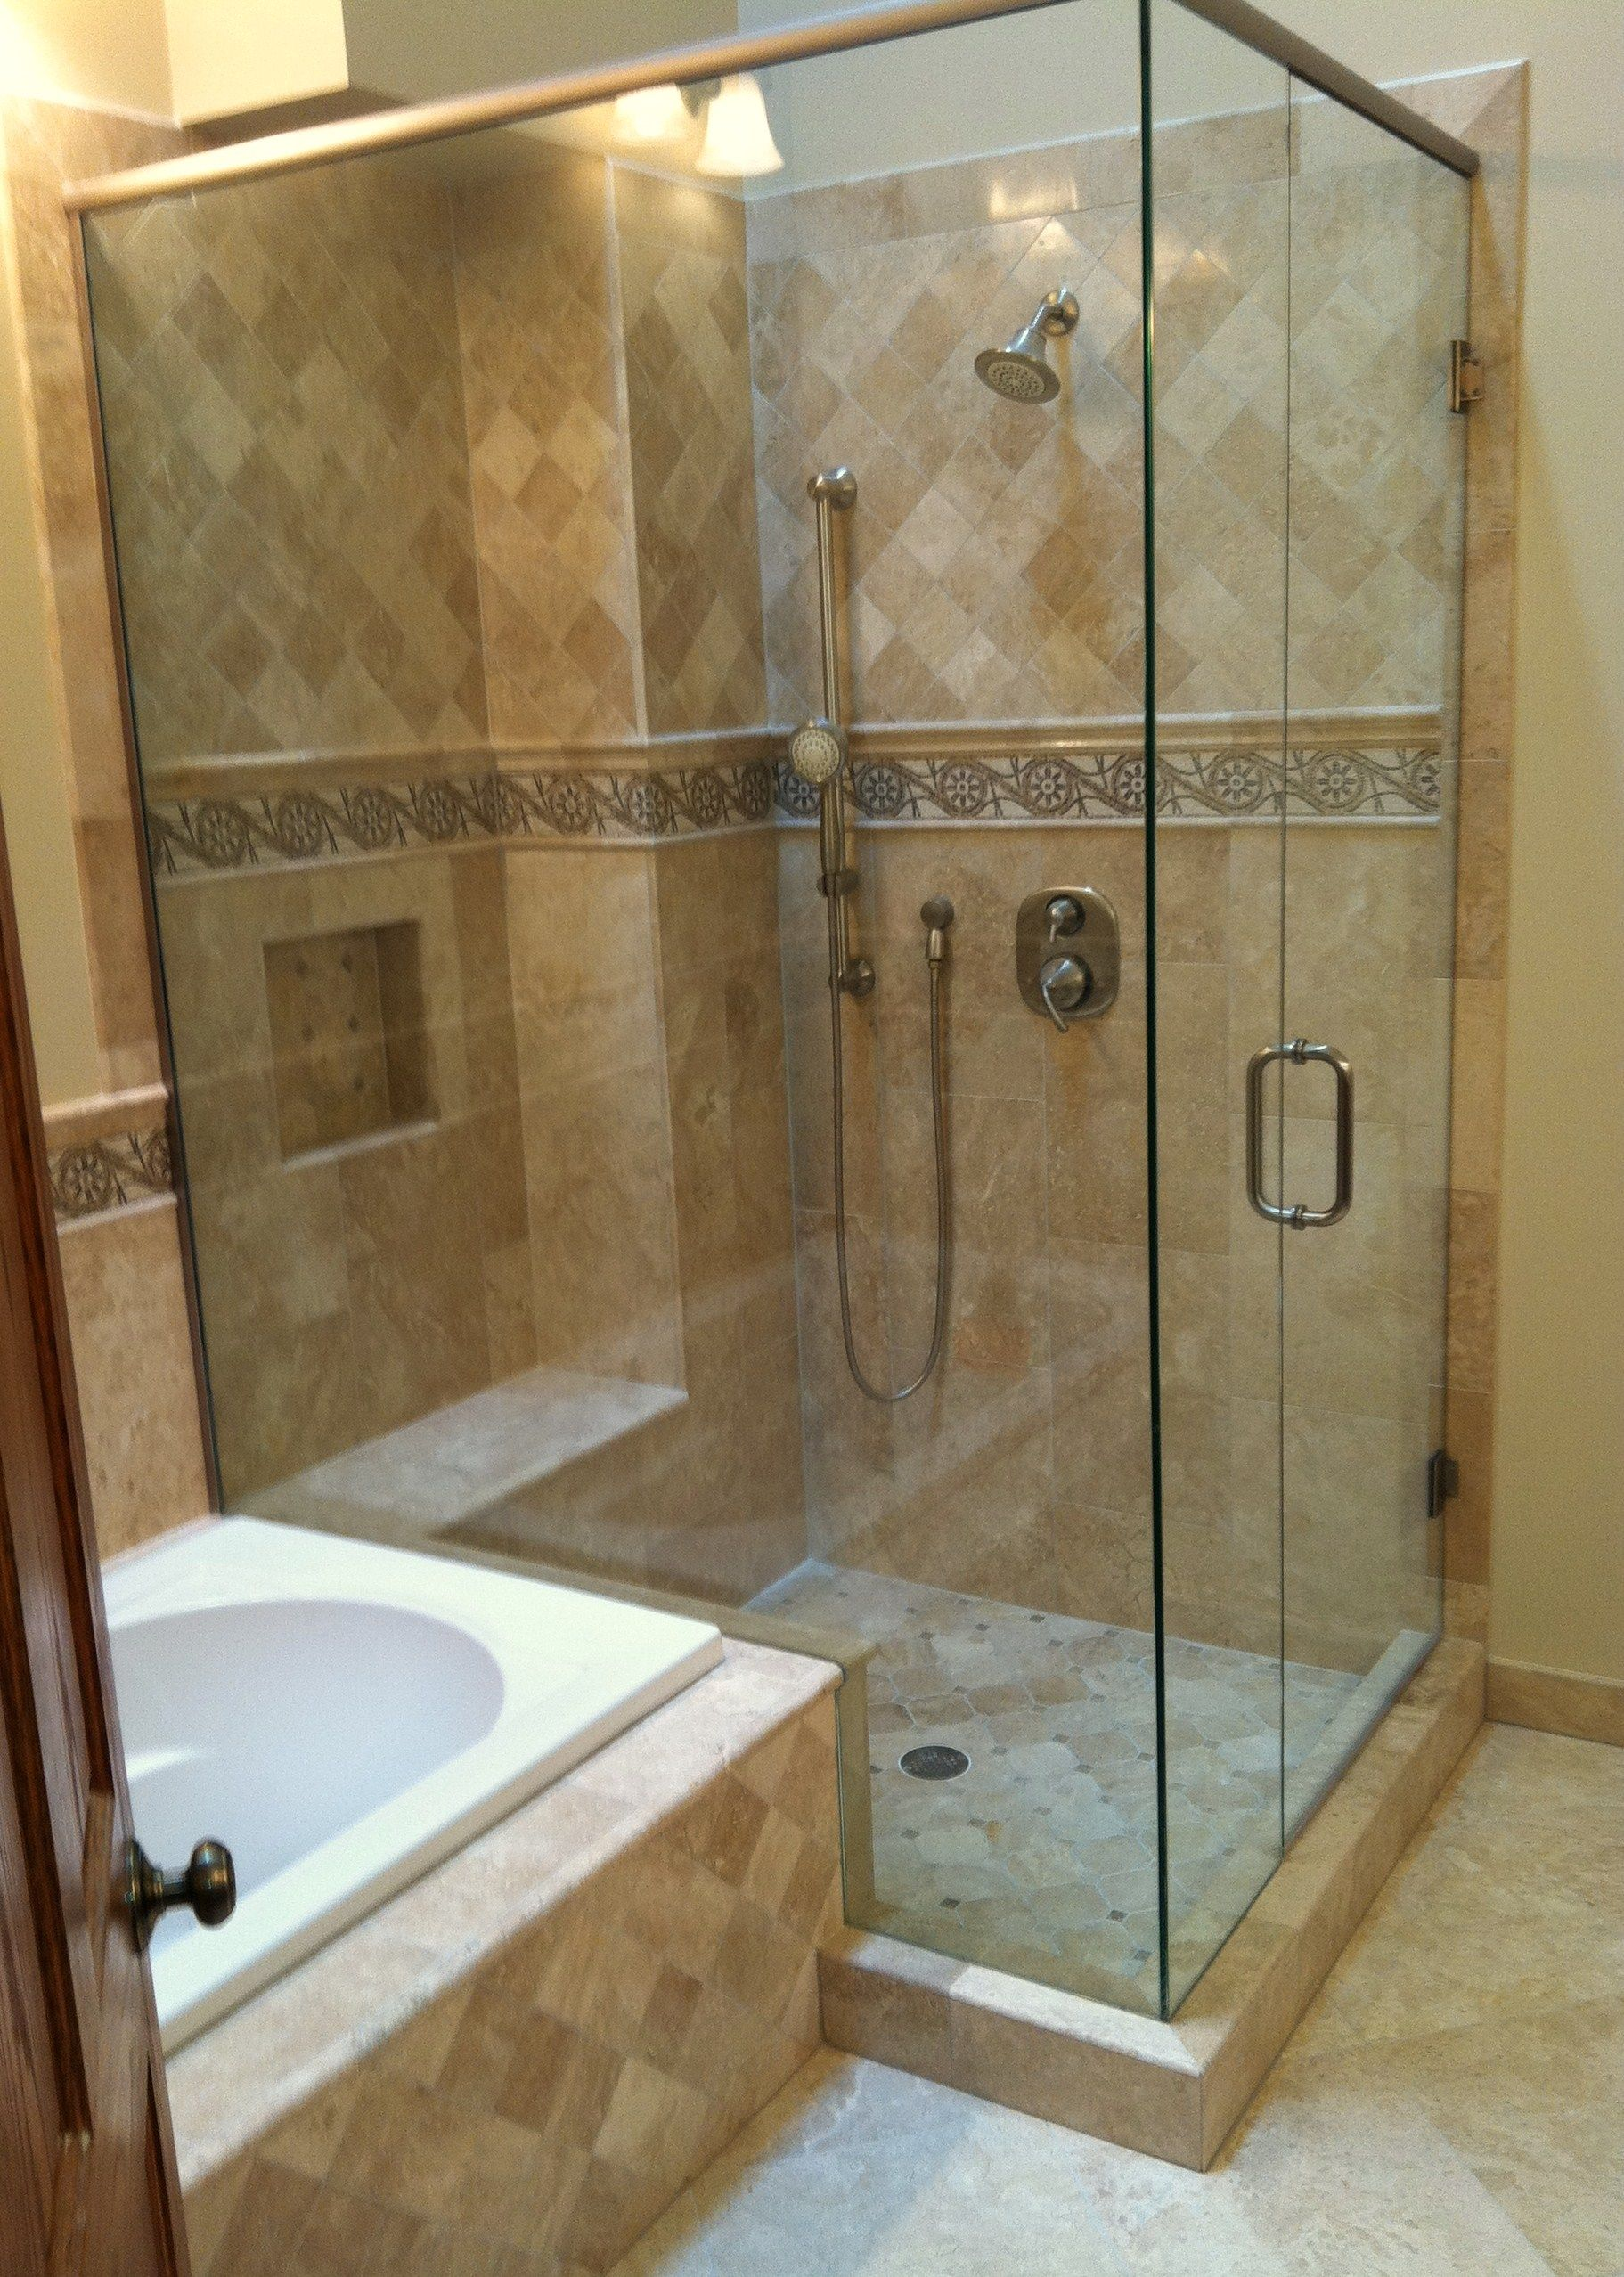 Average Price Of A Bathroom Remodel Property Image Review